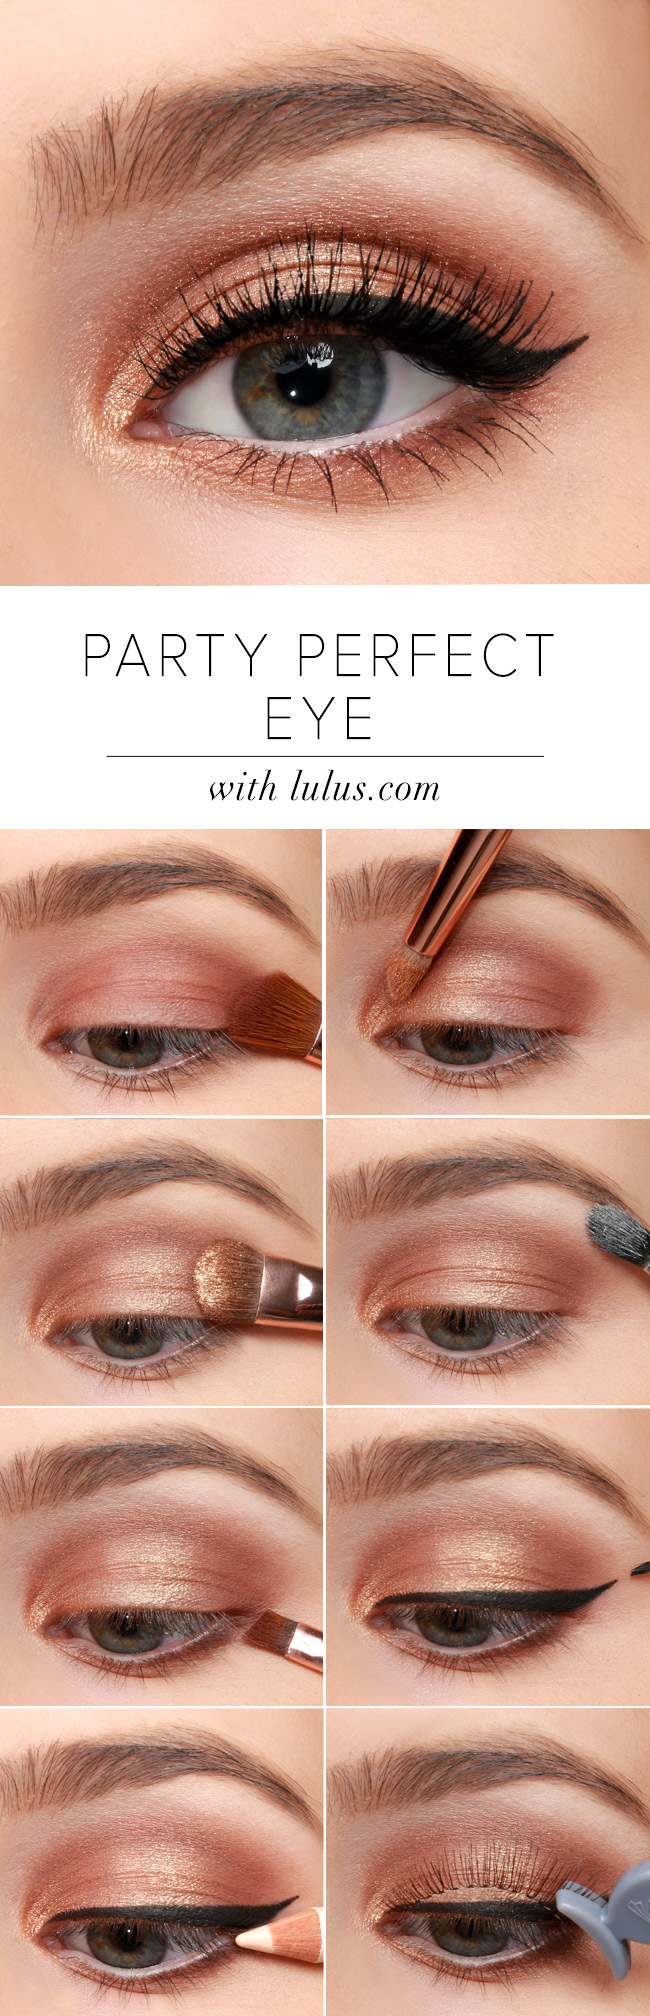 Lulus how to party perfect eye makeup tutorial lulus lulus how to party perfect eye makeup tutorial at lulus baditri Gallery